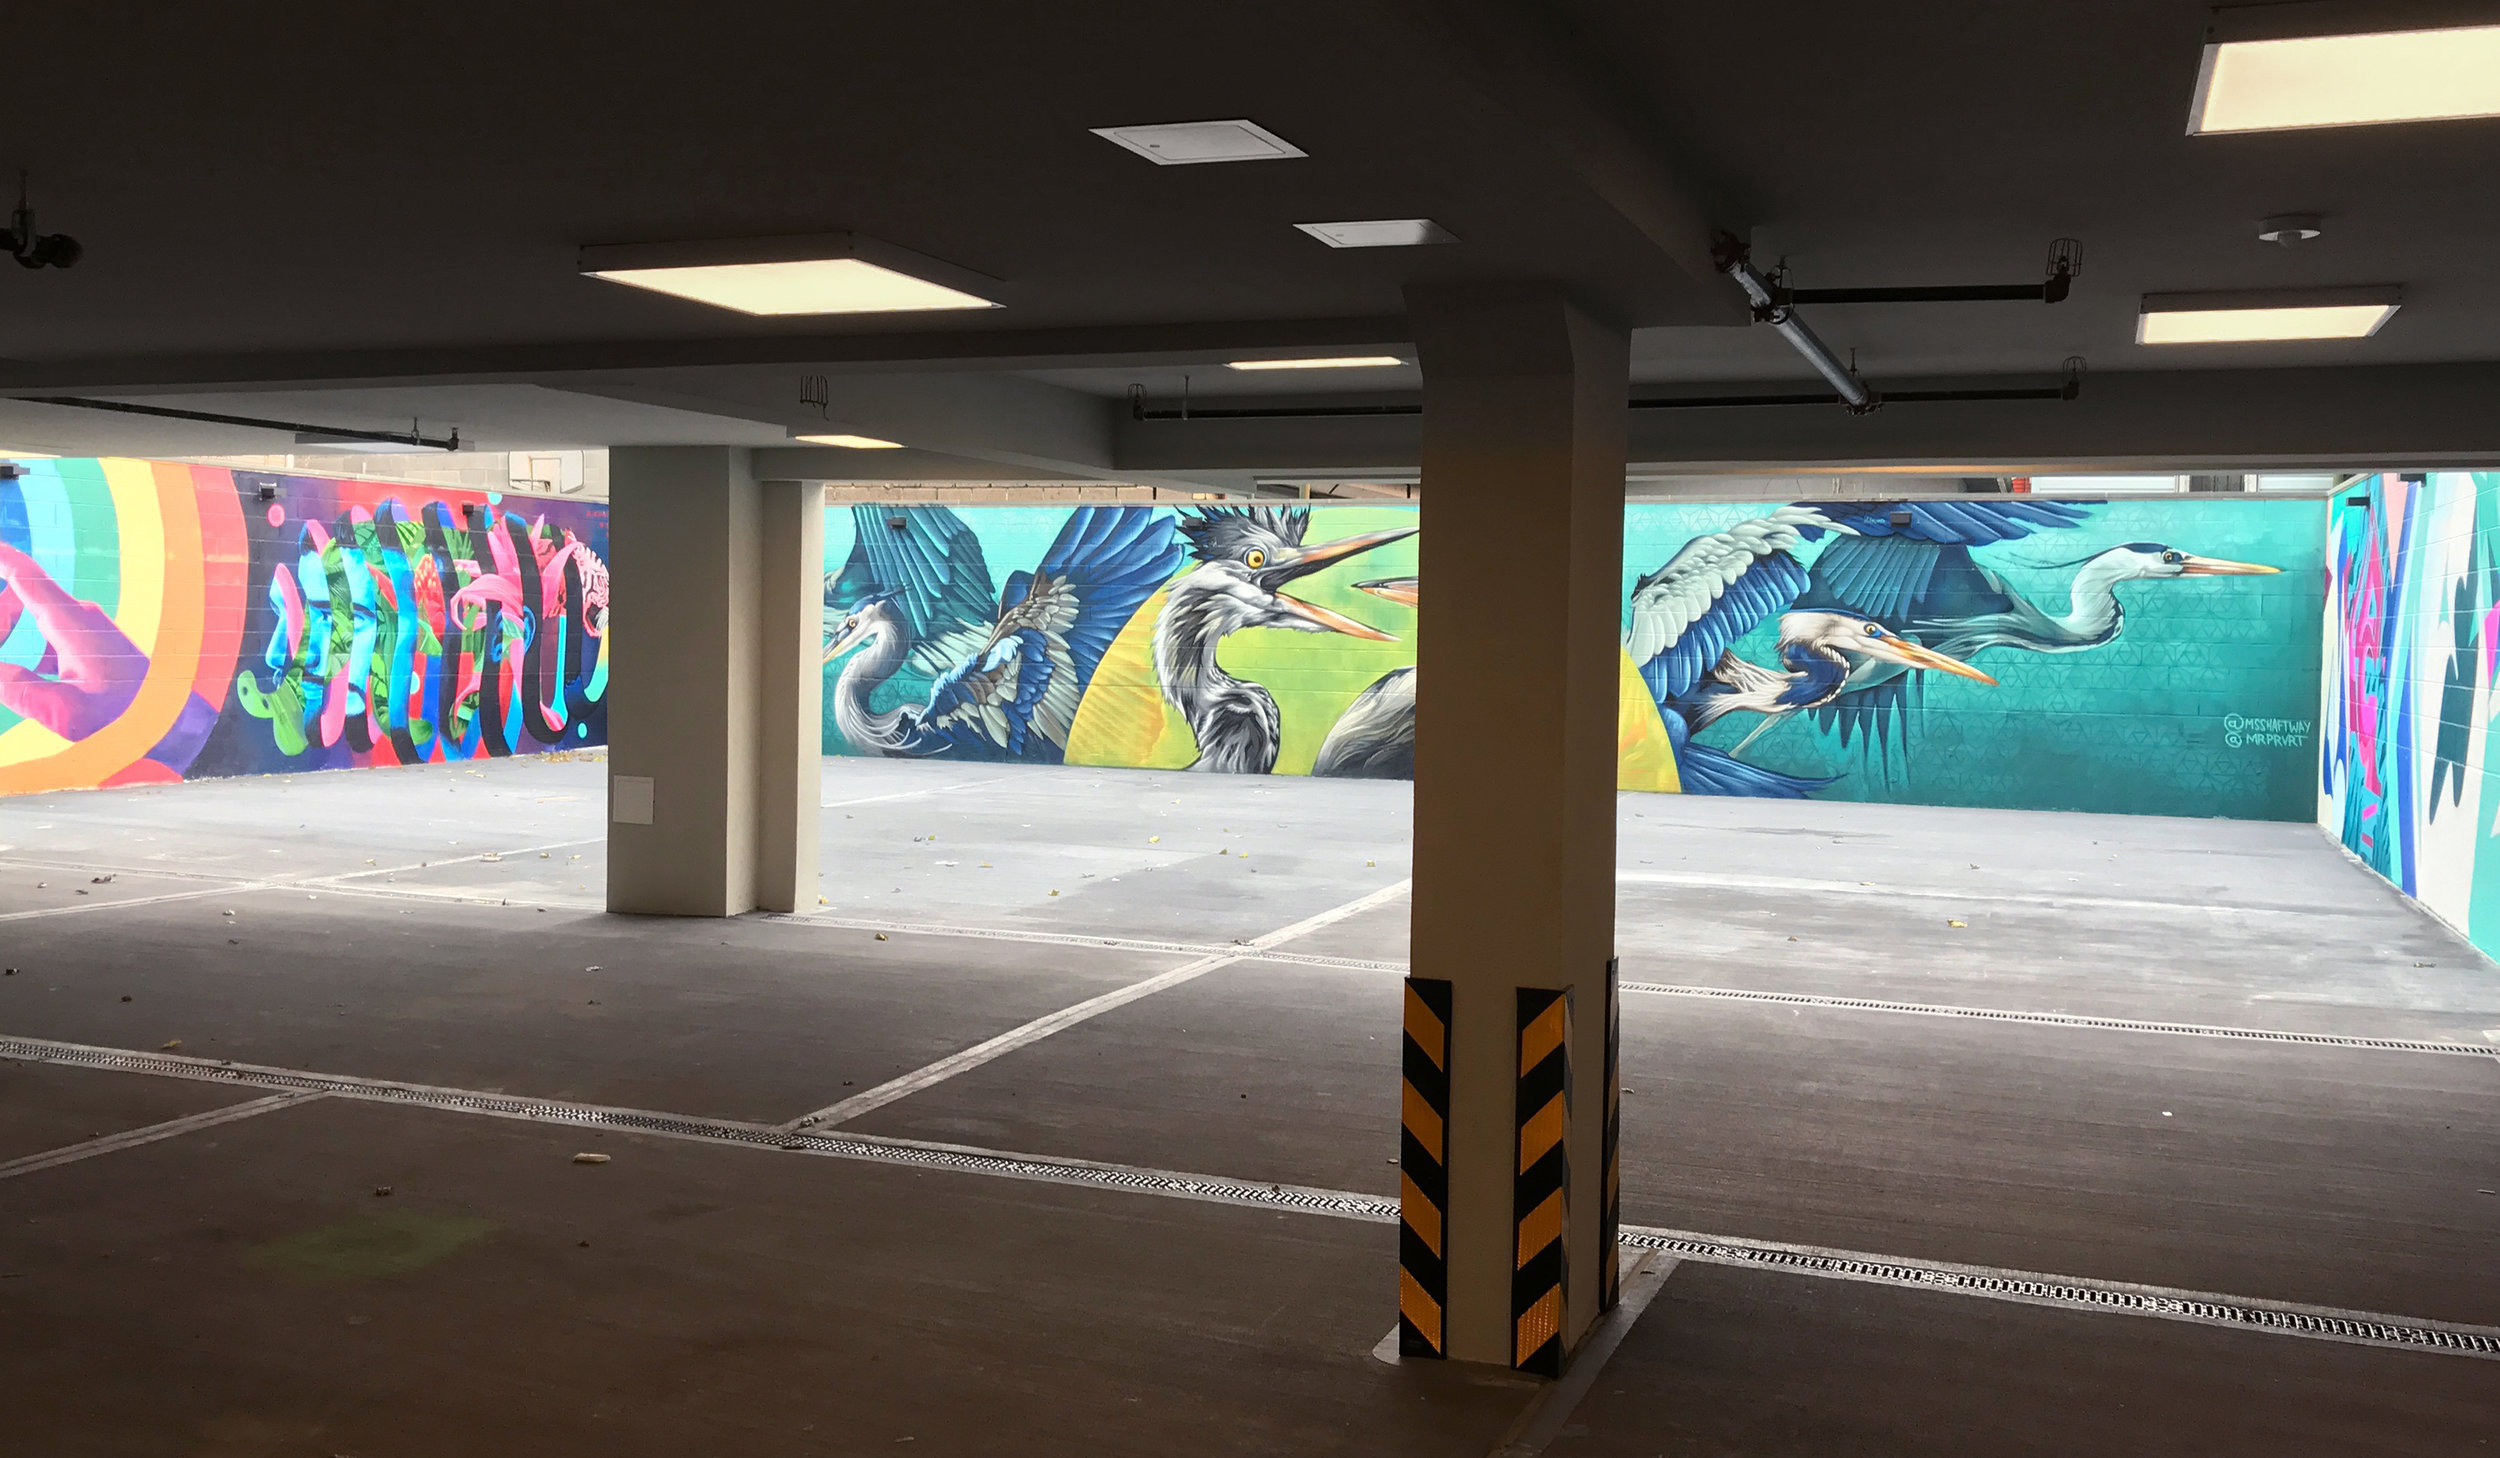 graffiti-house-parking2.jpg